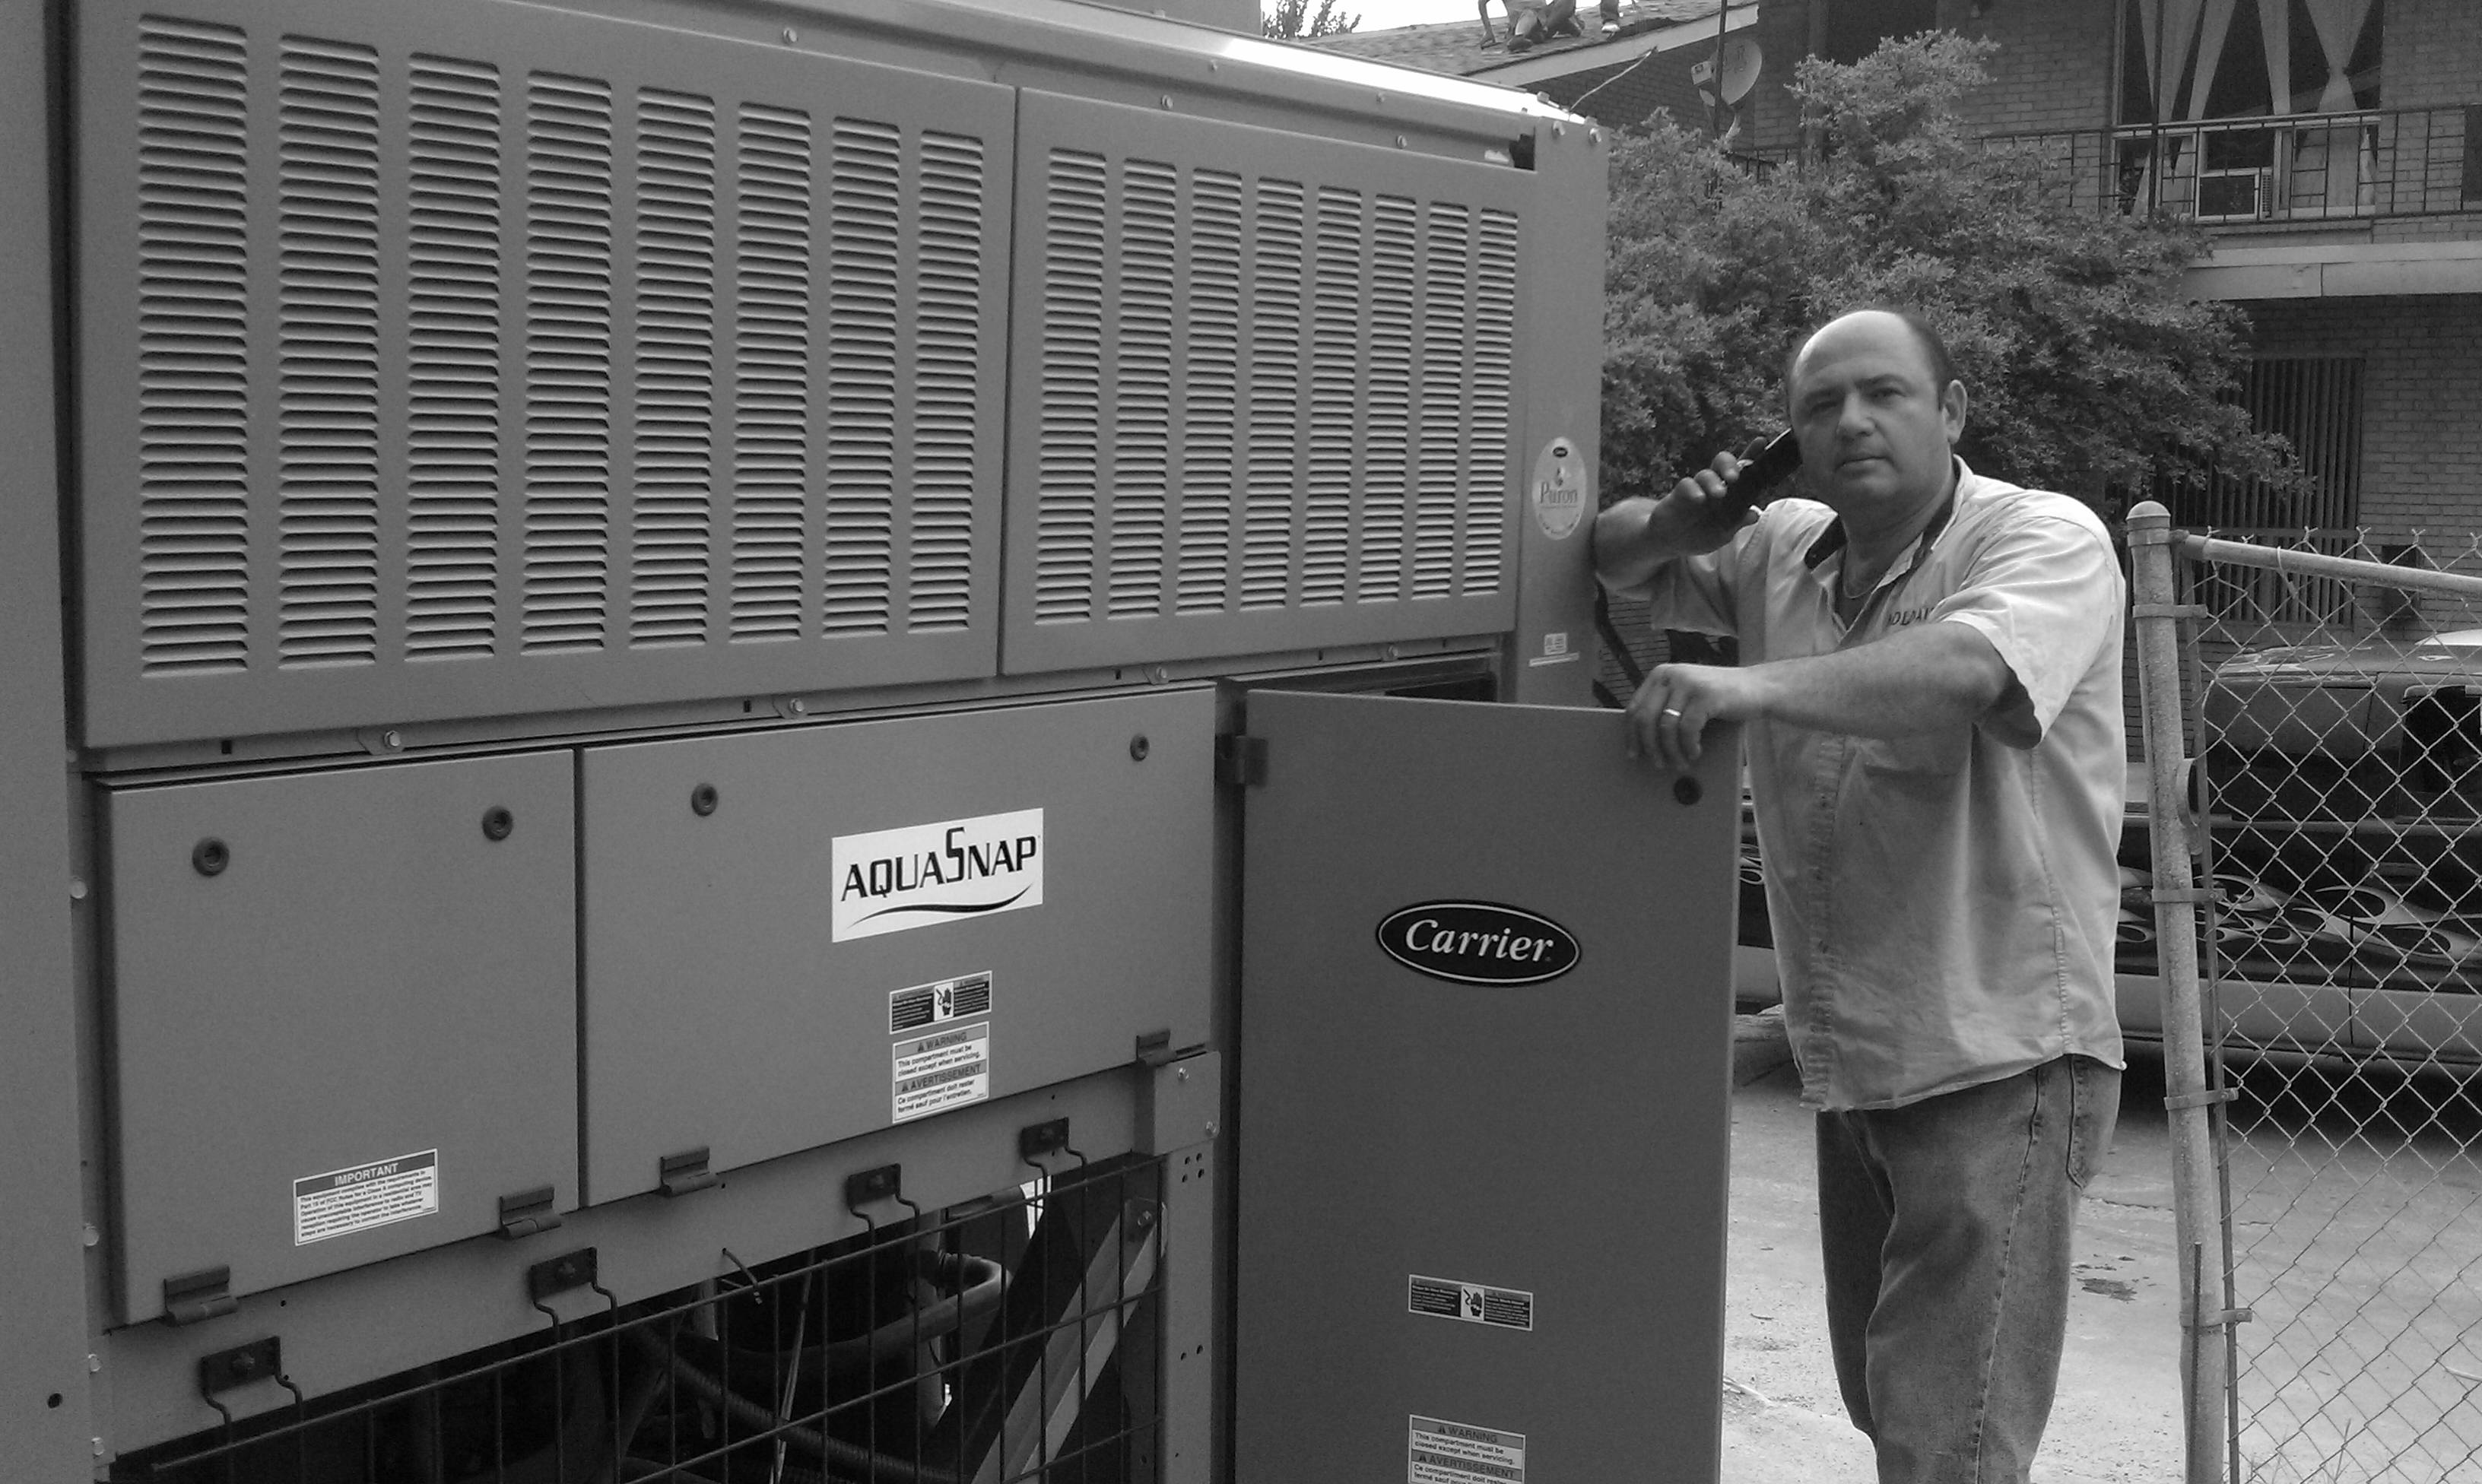 We offer emergency and routine AC Repair for Residential and Commercial systems. Fast, efficient, and always with the highest quality service, depend on us to fix your air conditioner any time of the day, any time of the year.